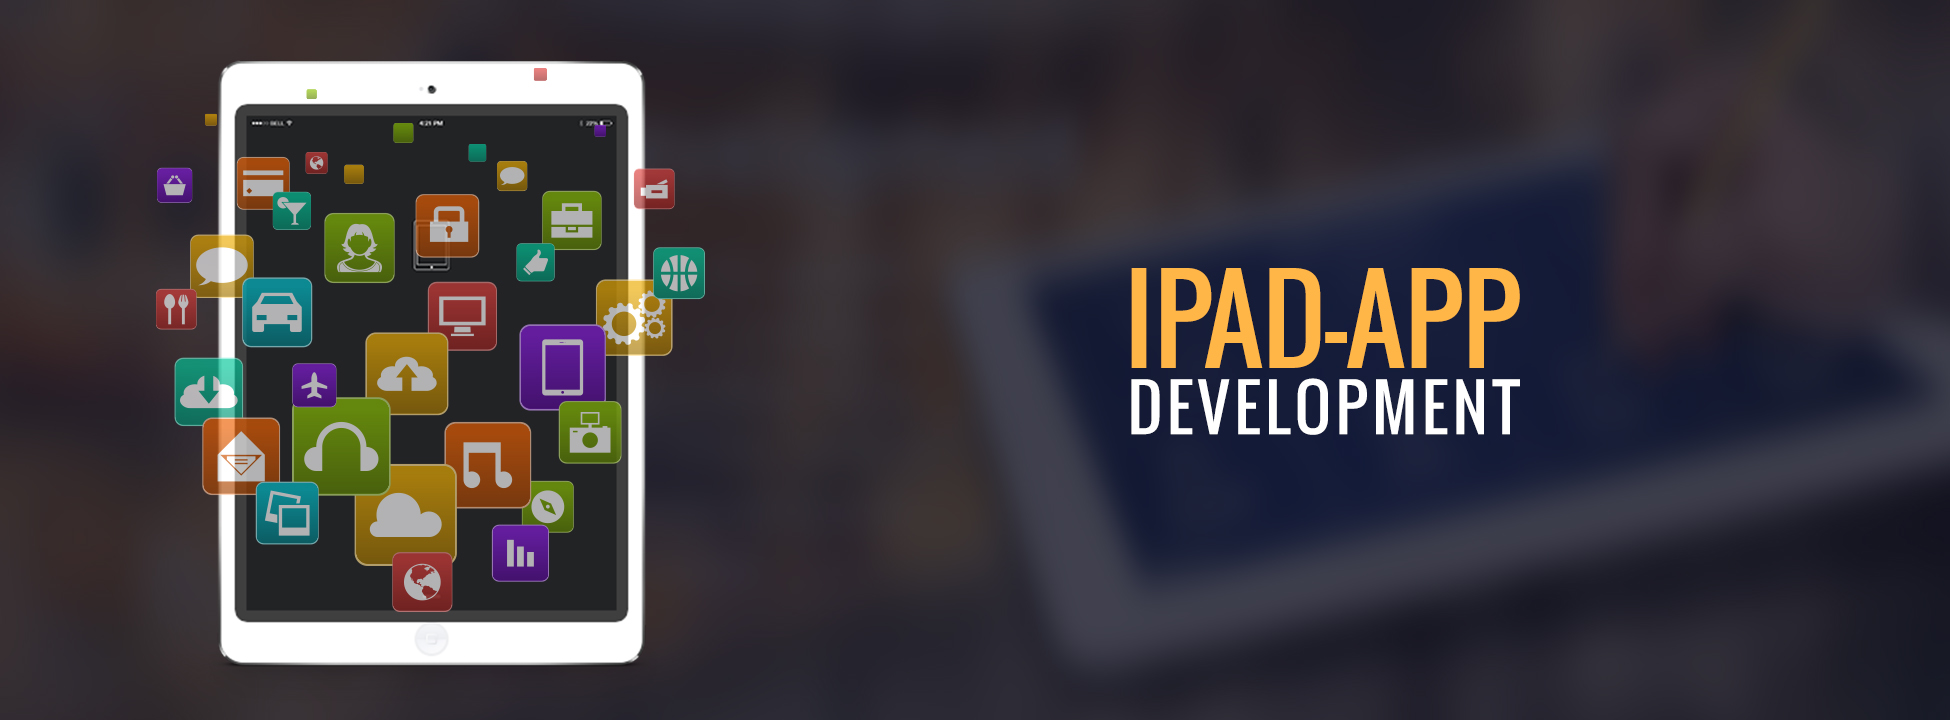 iPad Apps Development Company